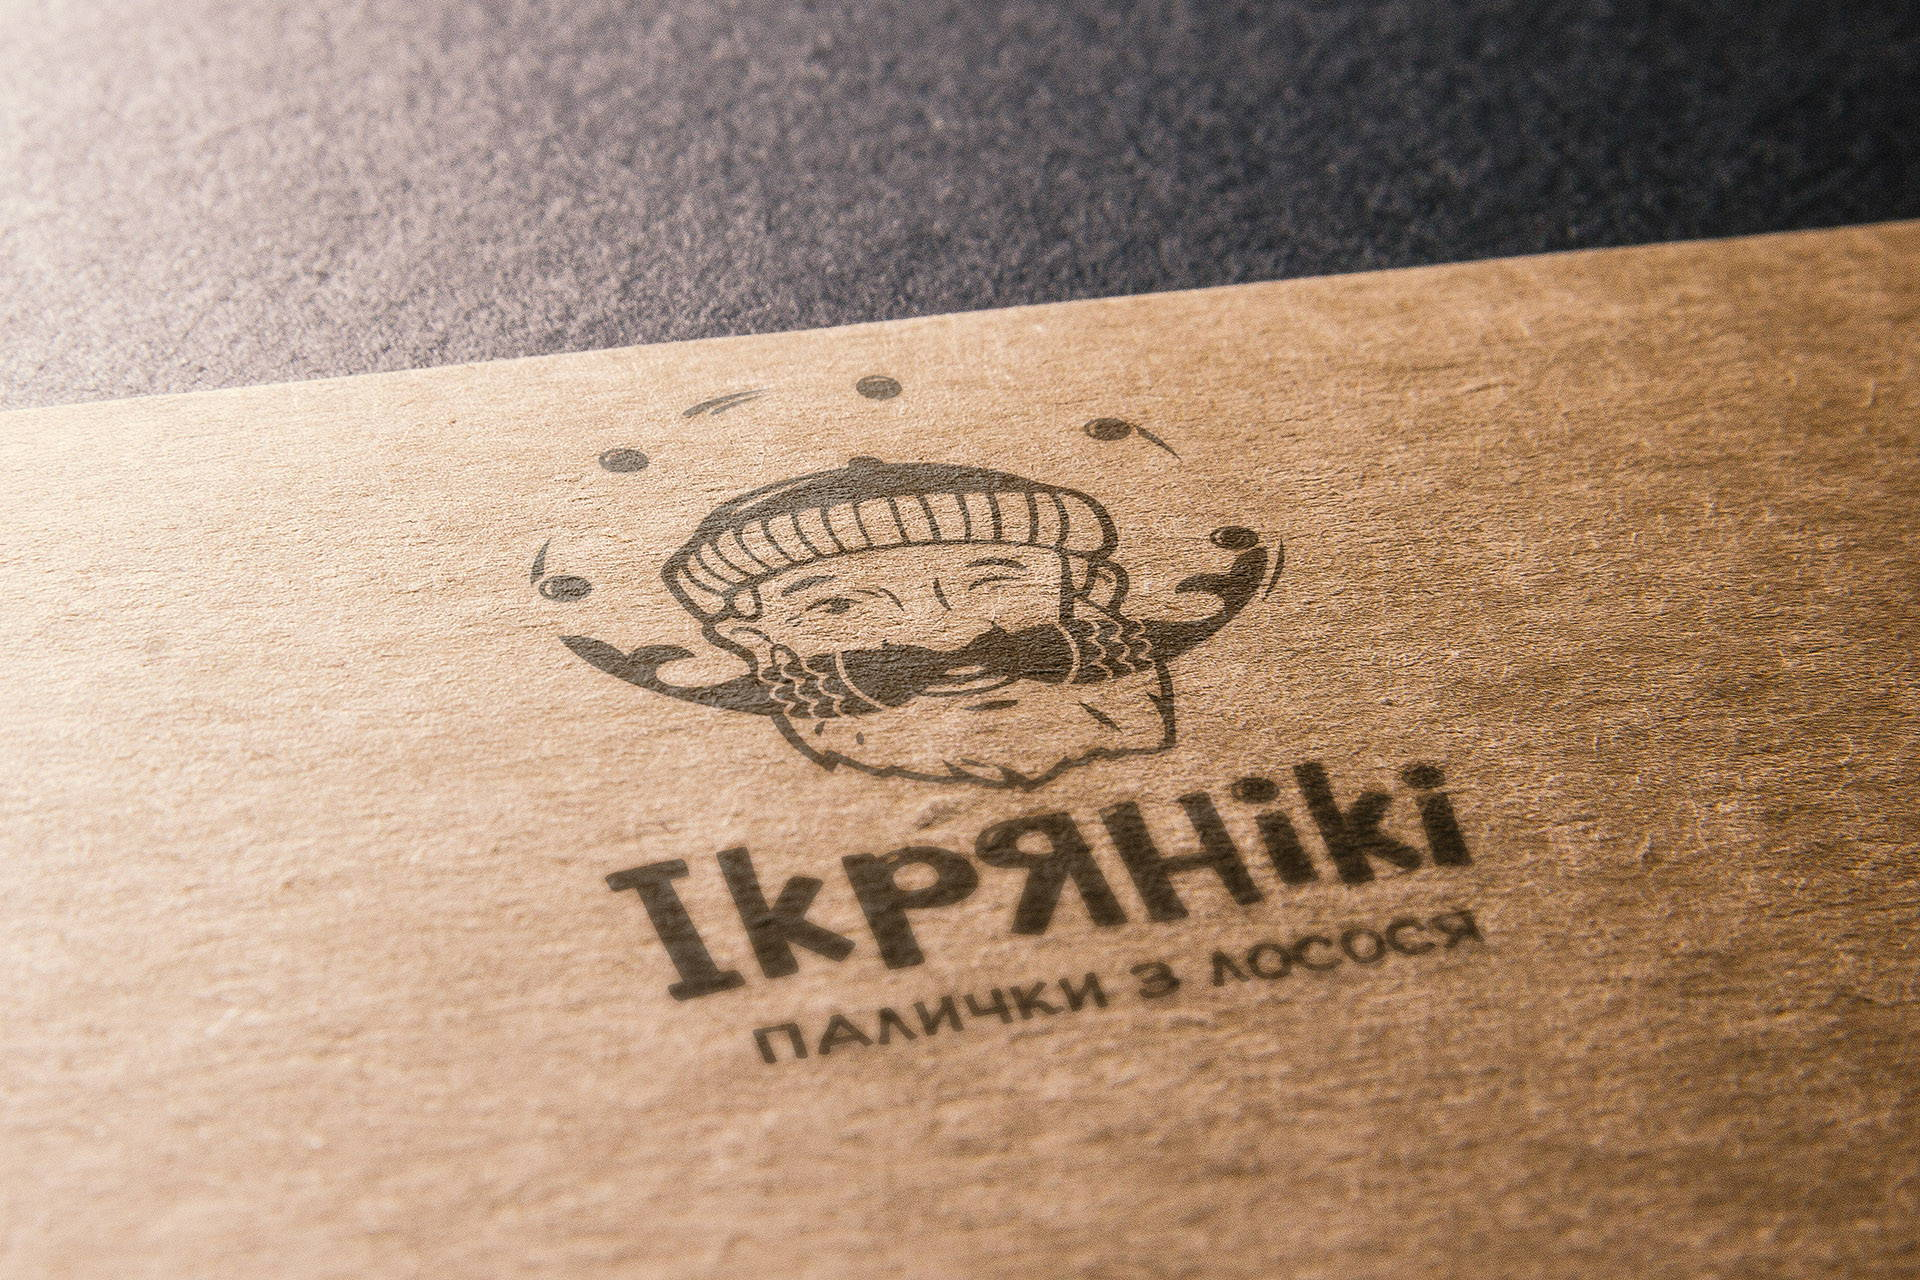 Development of the logo снеки